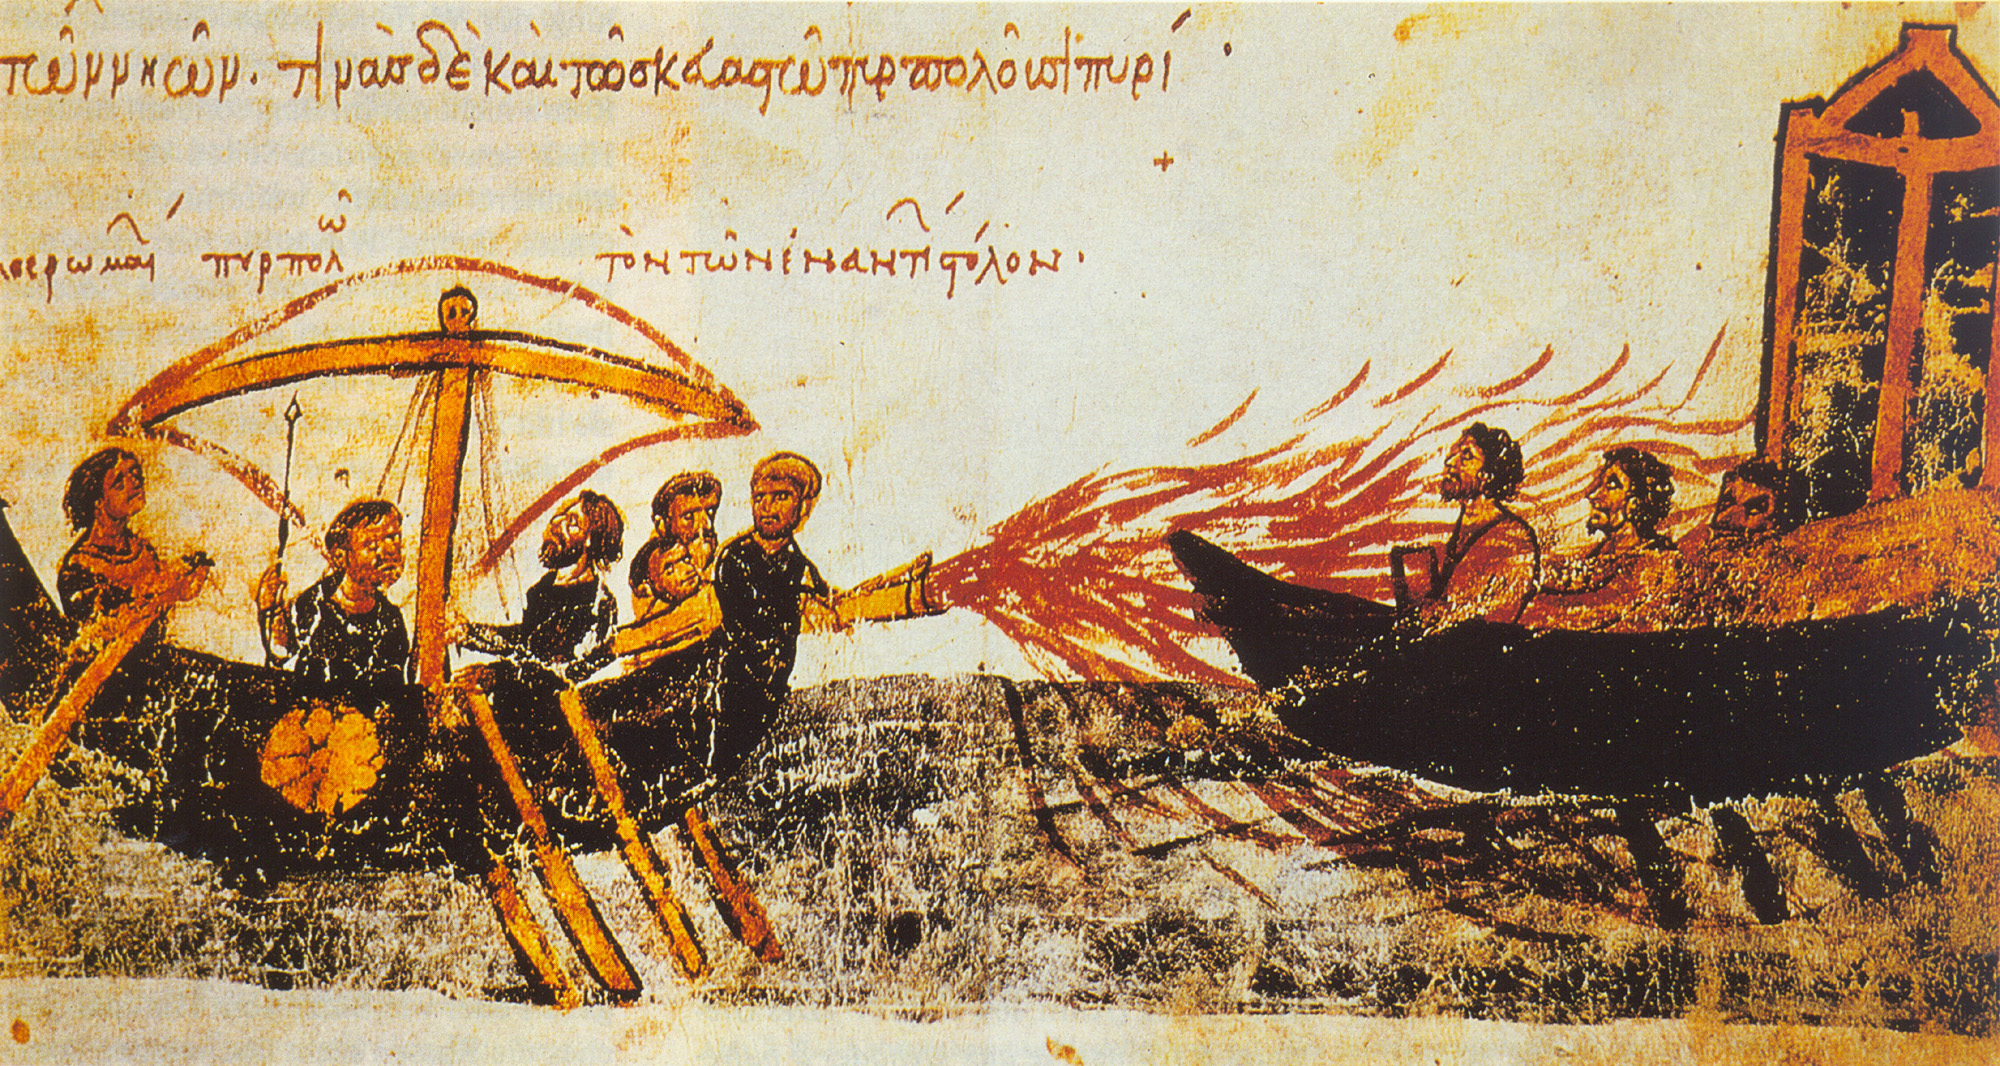 https://i2.wp.com/upload.wikimedia.org/wikipedia/commons/archive/f/f7/20110914132051%21Greekfire-madridskylitzes1.jpg